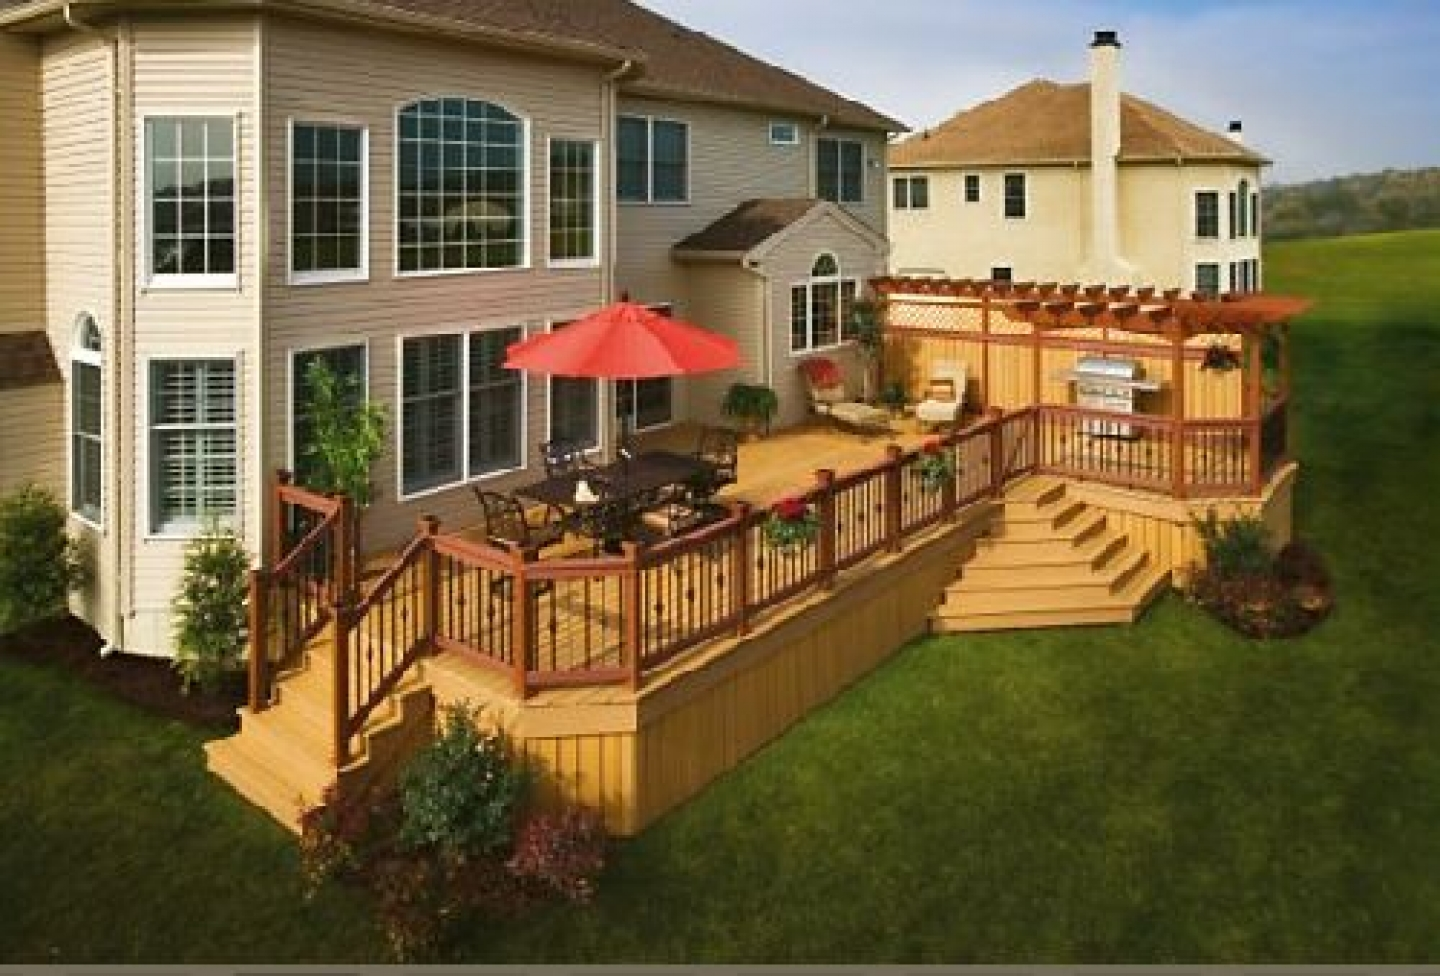 House deck ideas | Deck design and Ideas